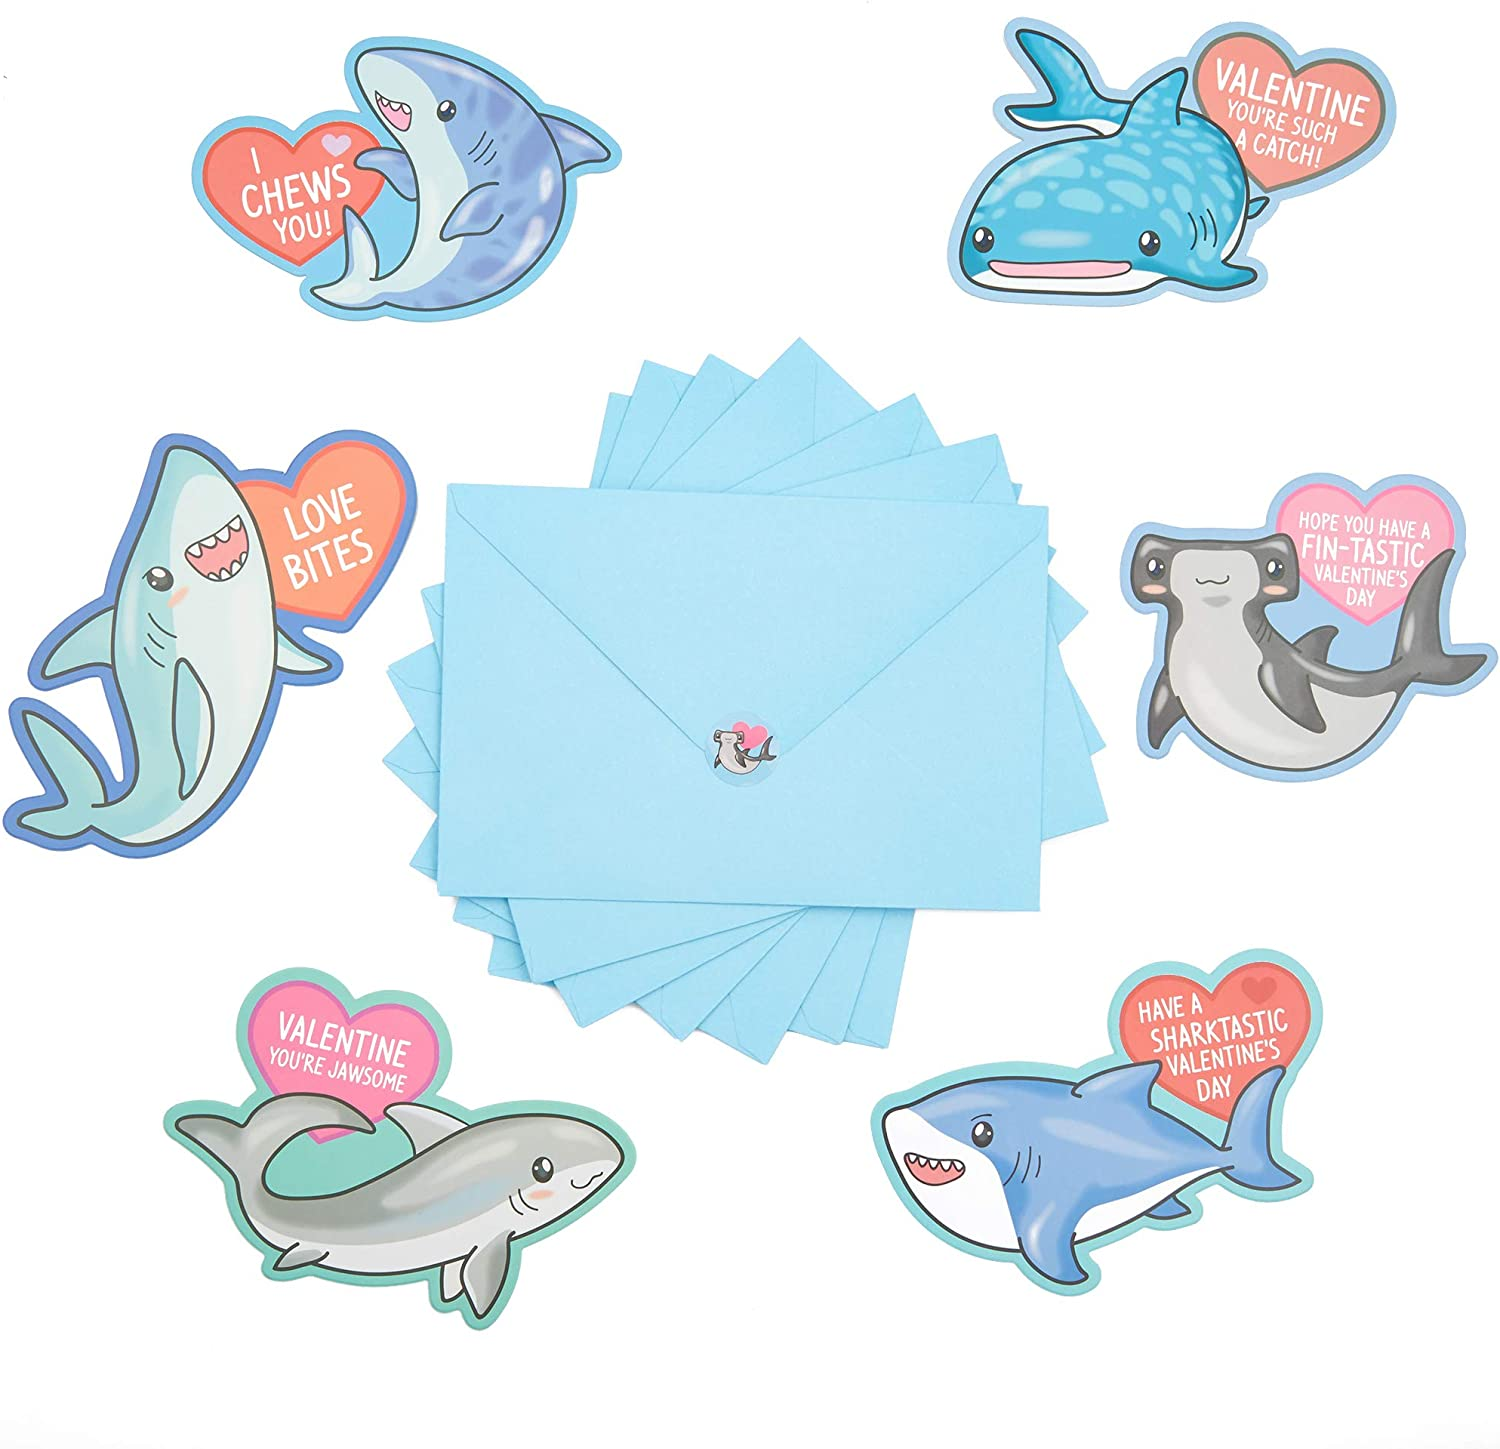 Shark Valentine's Day Cards with Stickers and Envelopes for Kids Classroom Exchange (36-Pack)